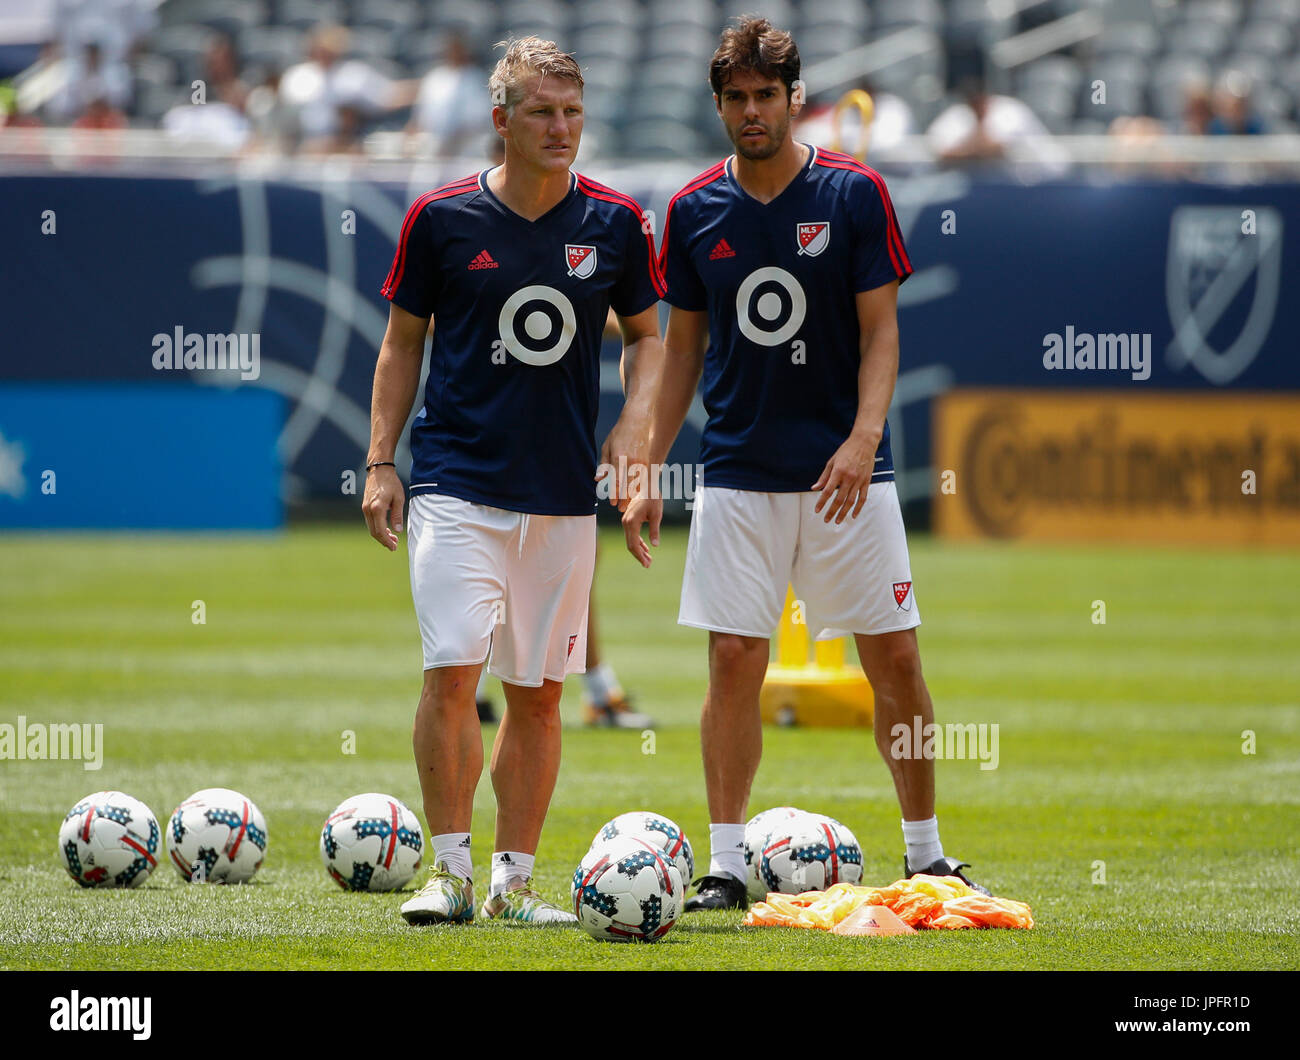 55c5dddc5e80 MLS All-Stars captain Bastian Schweinsteiger (L) and Kaka (R) partucipate  in a training session prior to the friendly match between Real Madrid and  the MLS ...